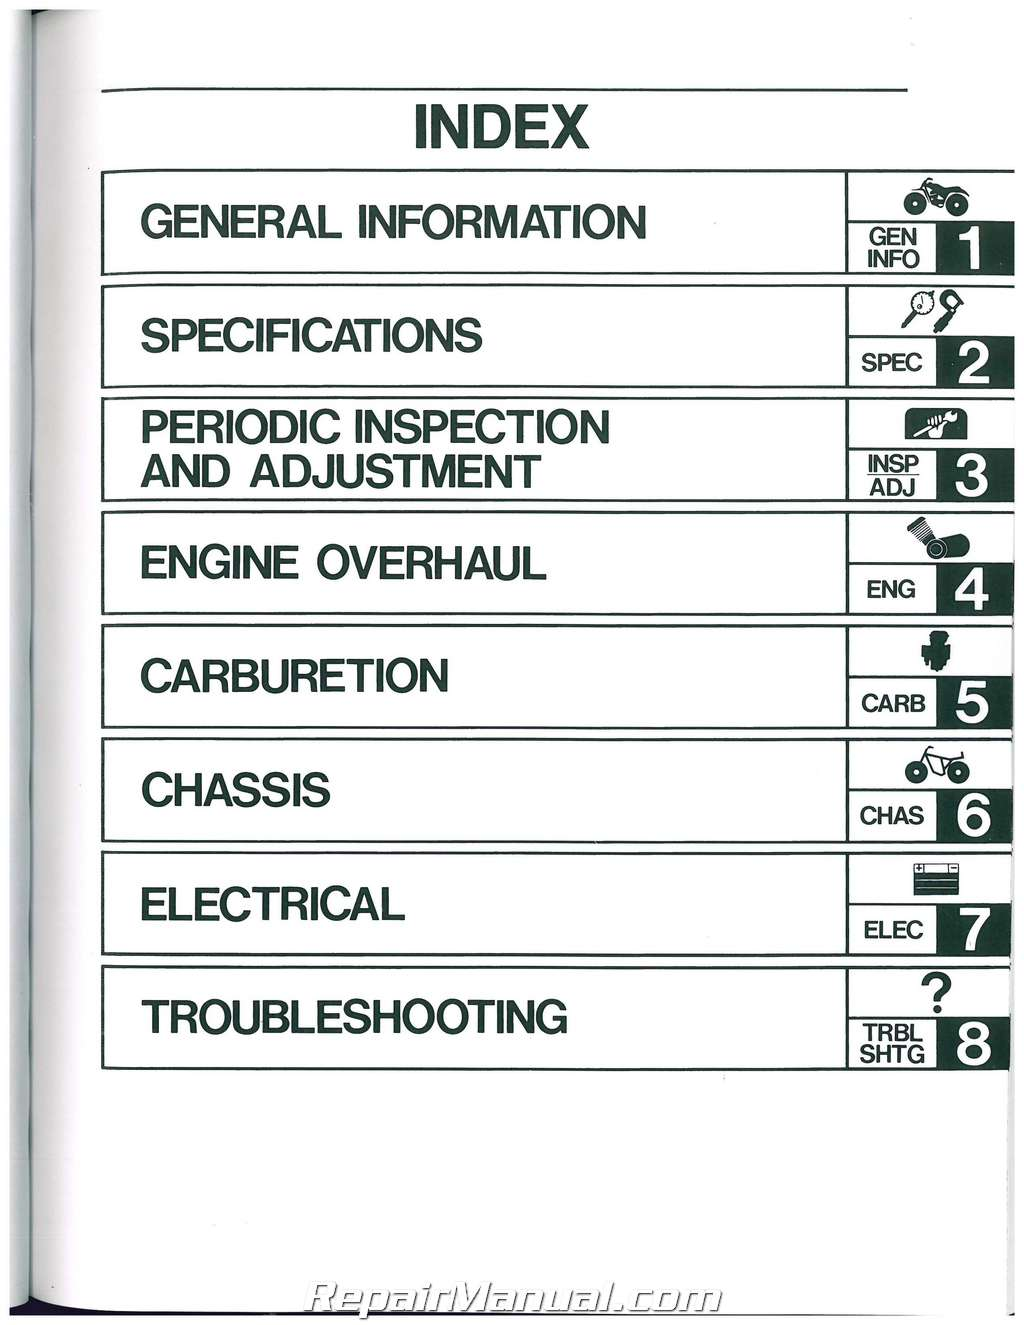 Yamaha Grizzly 125 Wiring Schematic Simple Diagram Shematics 2004 2013 Yfm125g Automatic Service Manual 2003